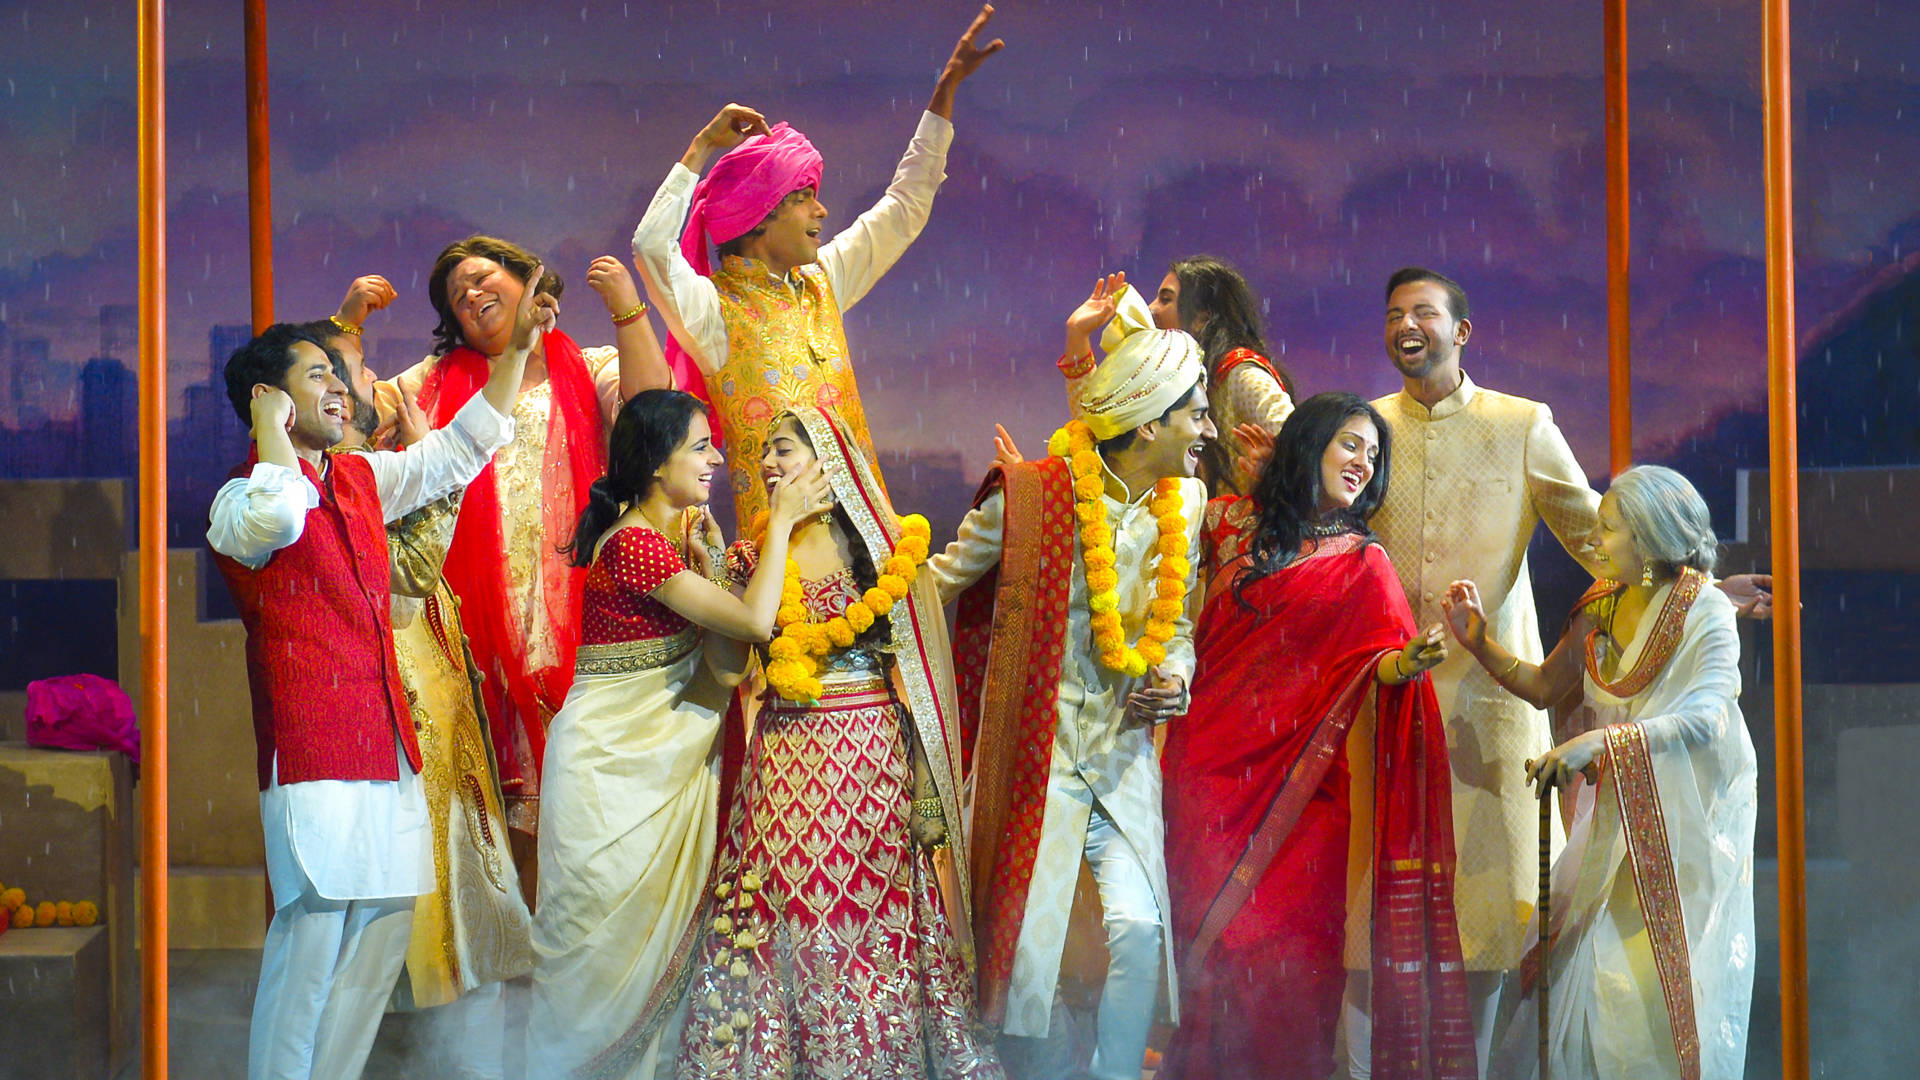 The Verma's and the Rai's celebrate the happy end to an arranged marriage in Mira Nair's musical theater adaption of her hit film, 'Monsoon Wedding' at the Berkeley Rep. Photo: Kevin Berne